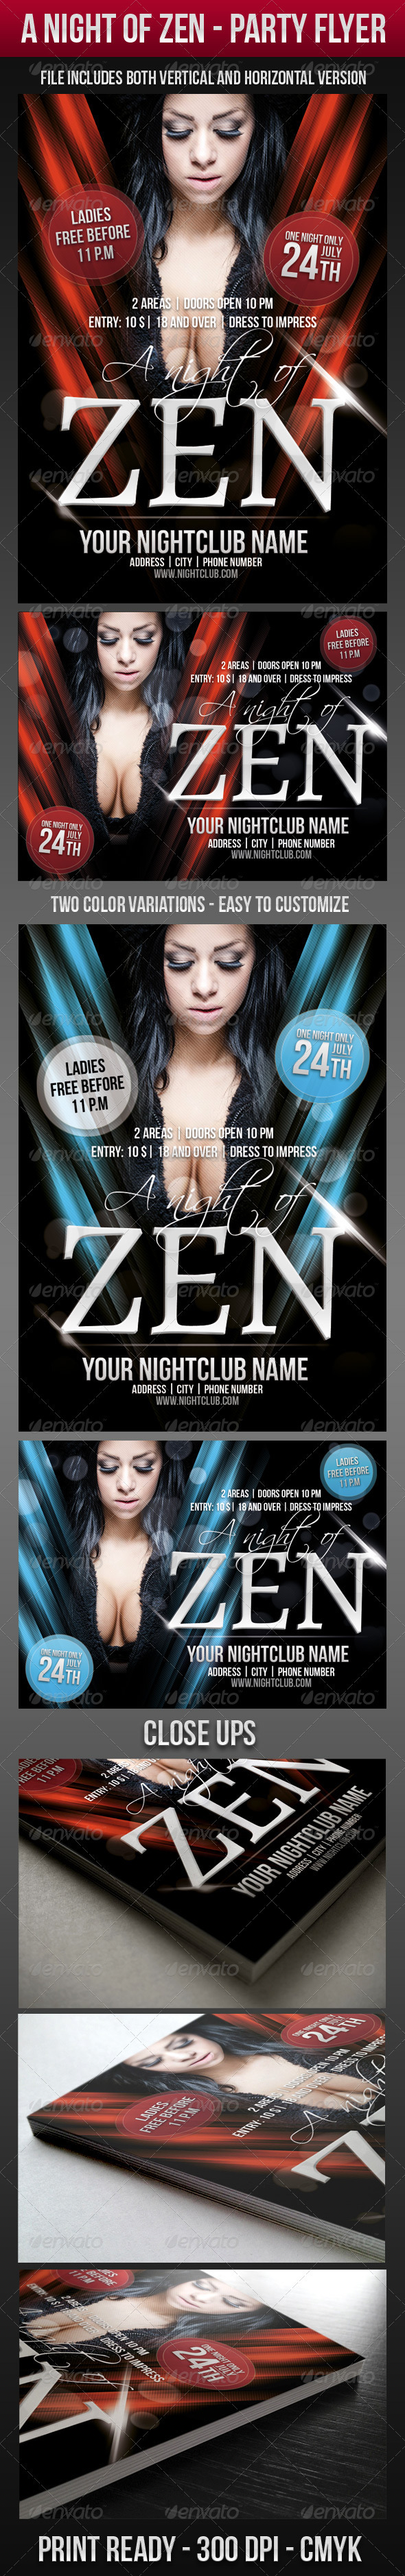 A Night Of Zen Party Flyer - Clubs & Parties Events